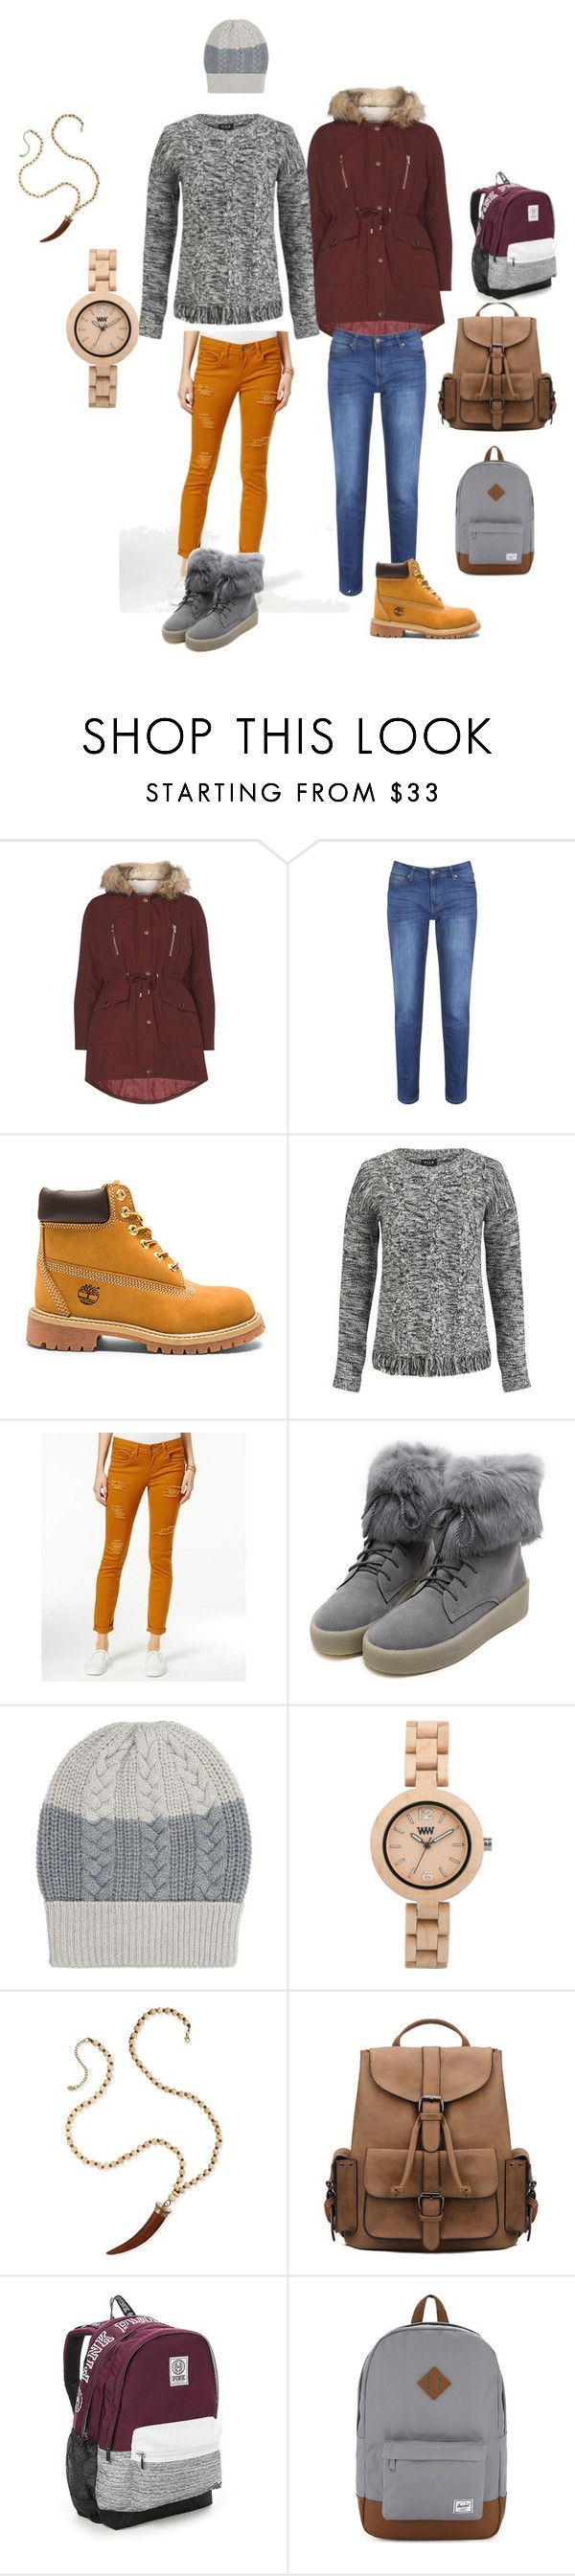 """""""CANDA shopping fall16"""" by meanixee on Polyvore featuring Dorothy Perkins, Brakeburn, Timberland, VILA, Dollhouse, WithChic, FAY, WeWood, Victoria's Secret and Herschel Supply Co."""